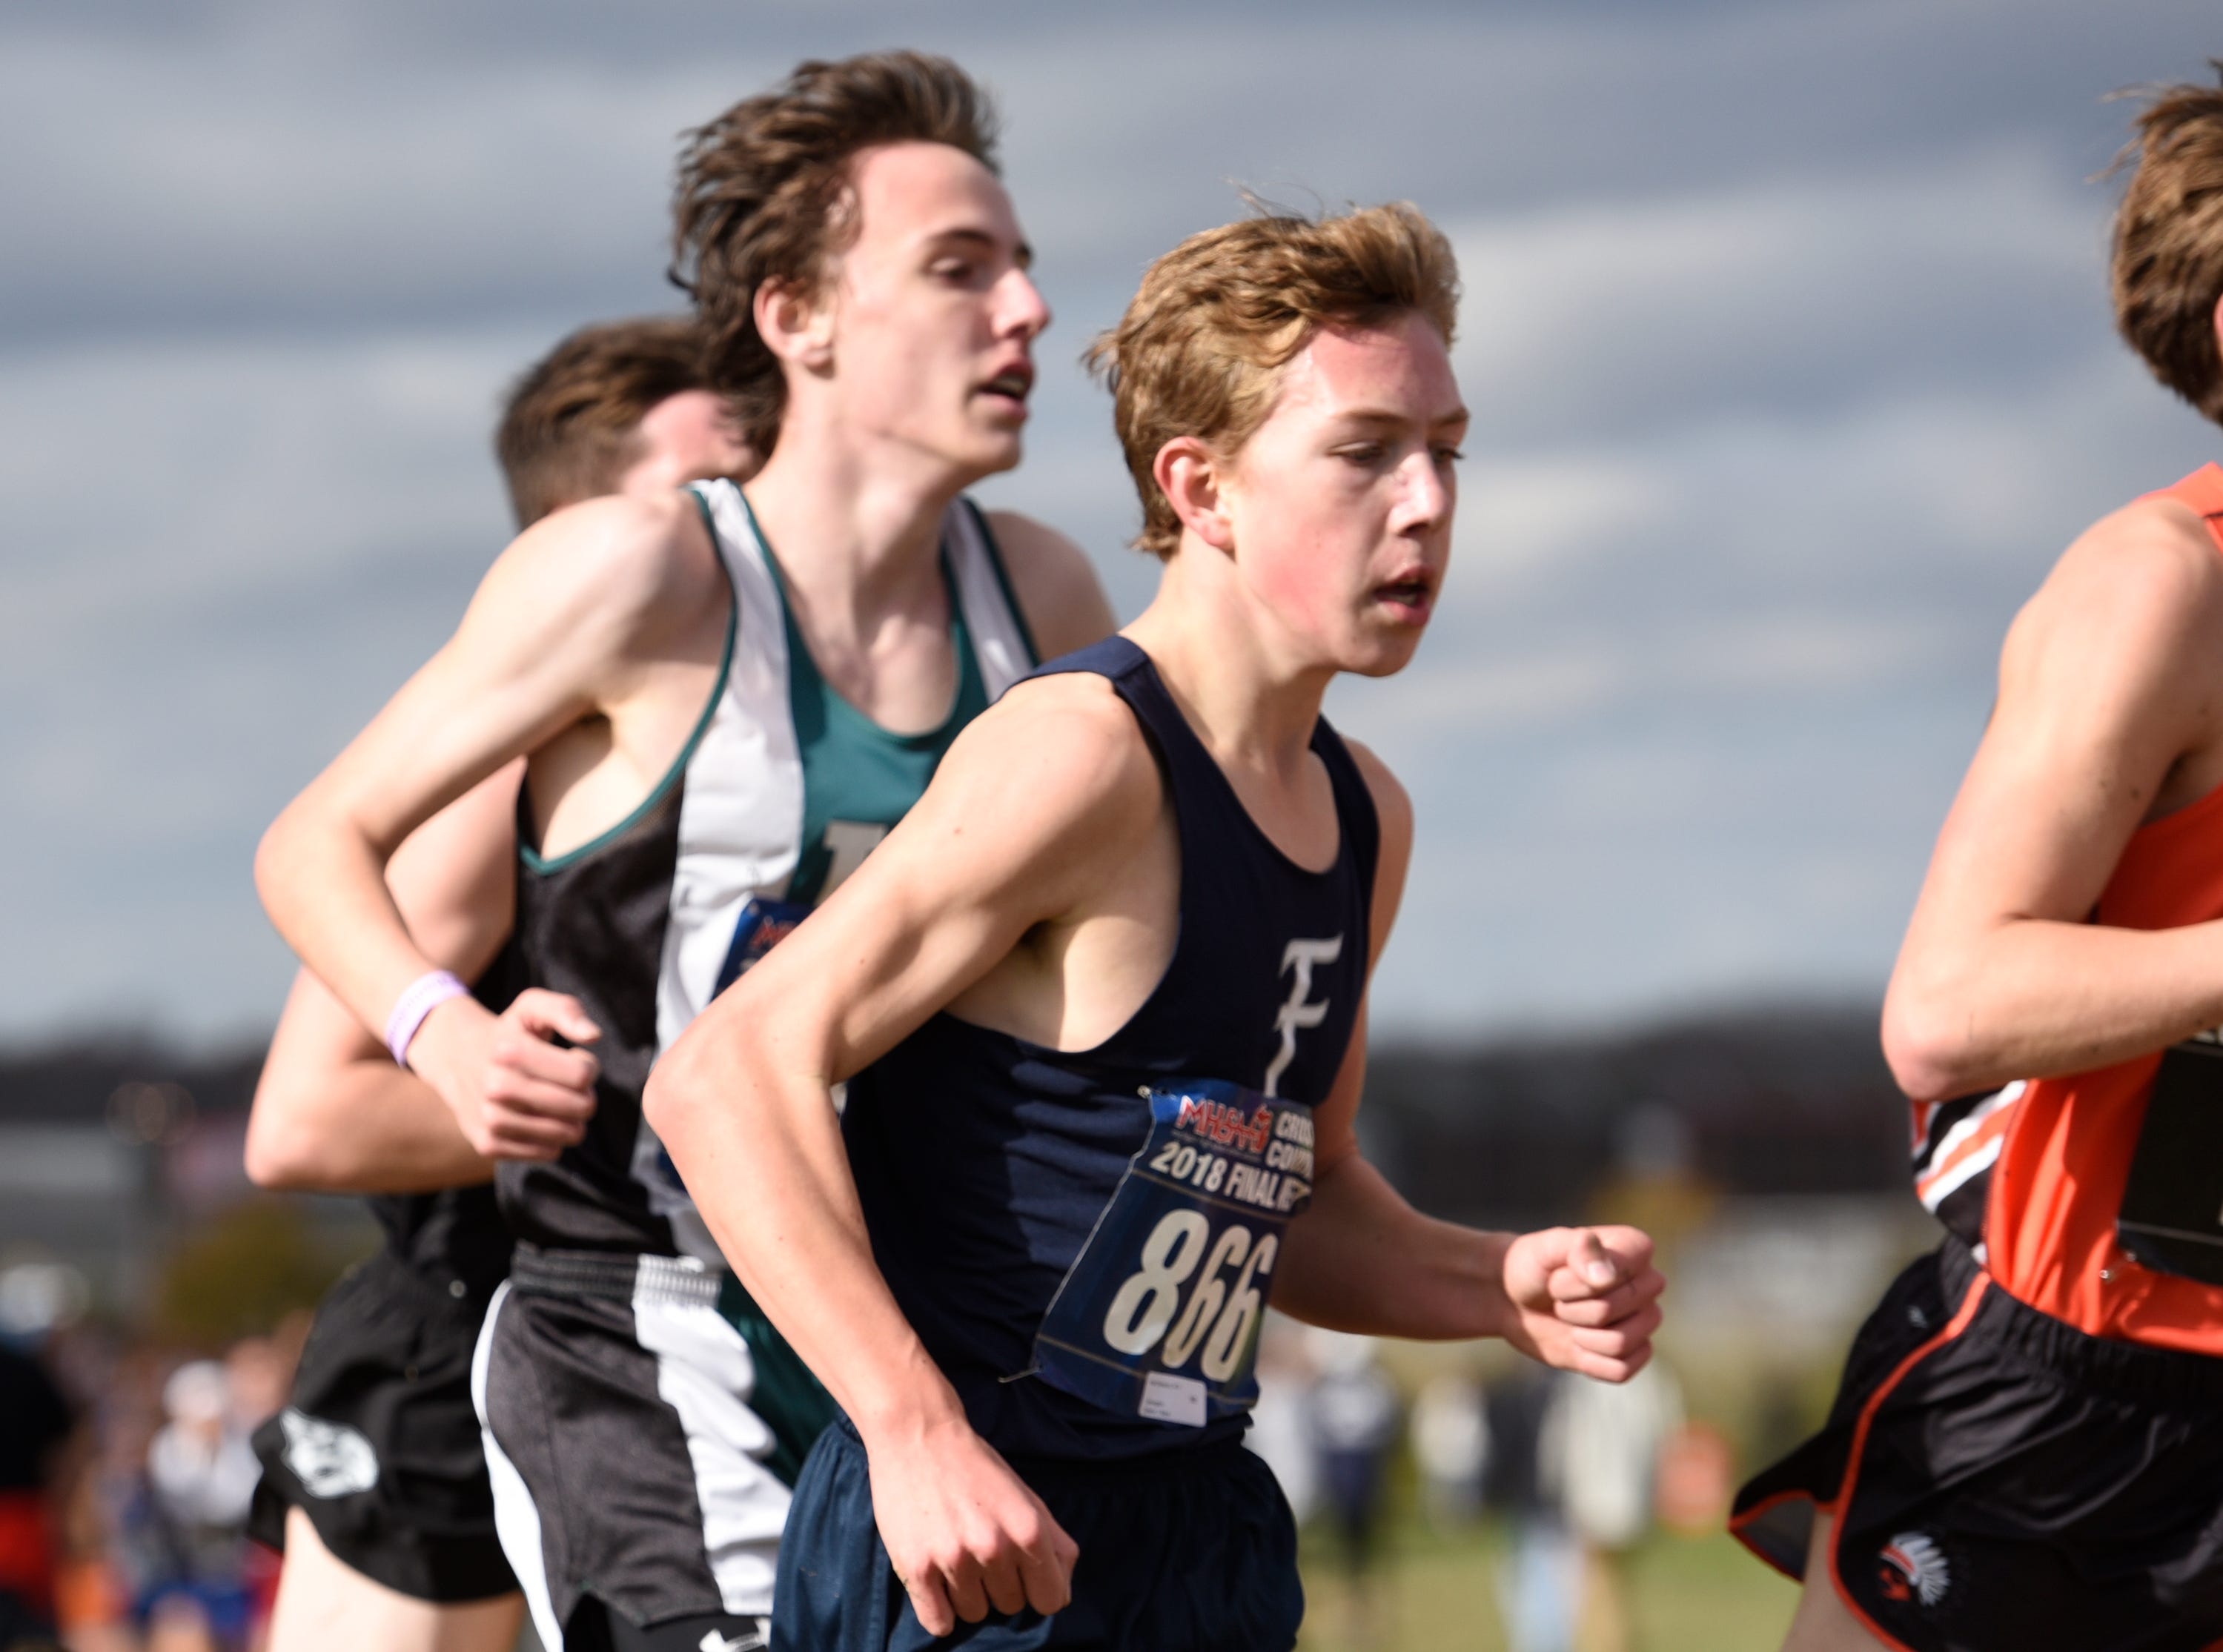 Farmington freshman Peter Baracco during the Division 1 2018 cross country finals at Michigan International Speedway.